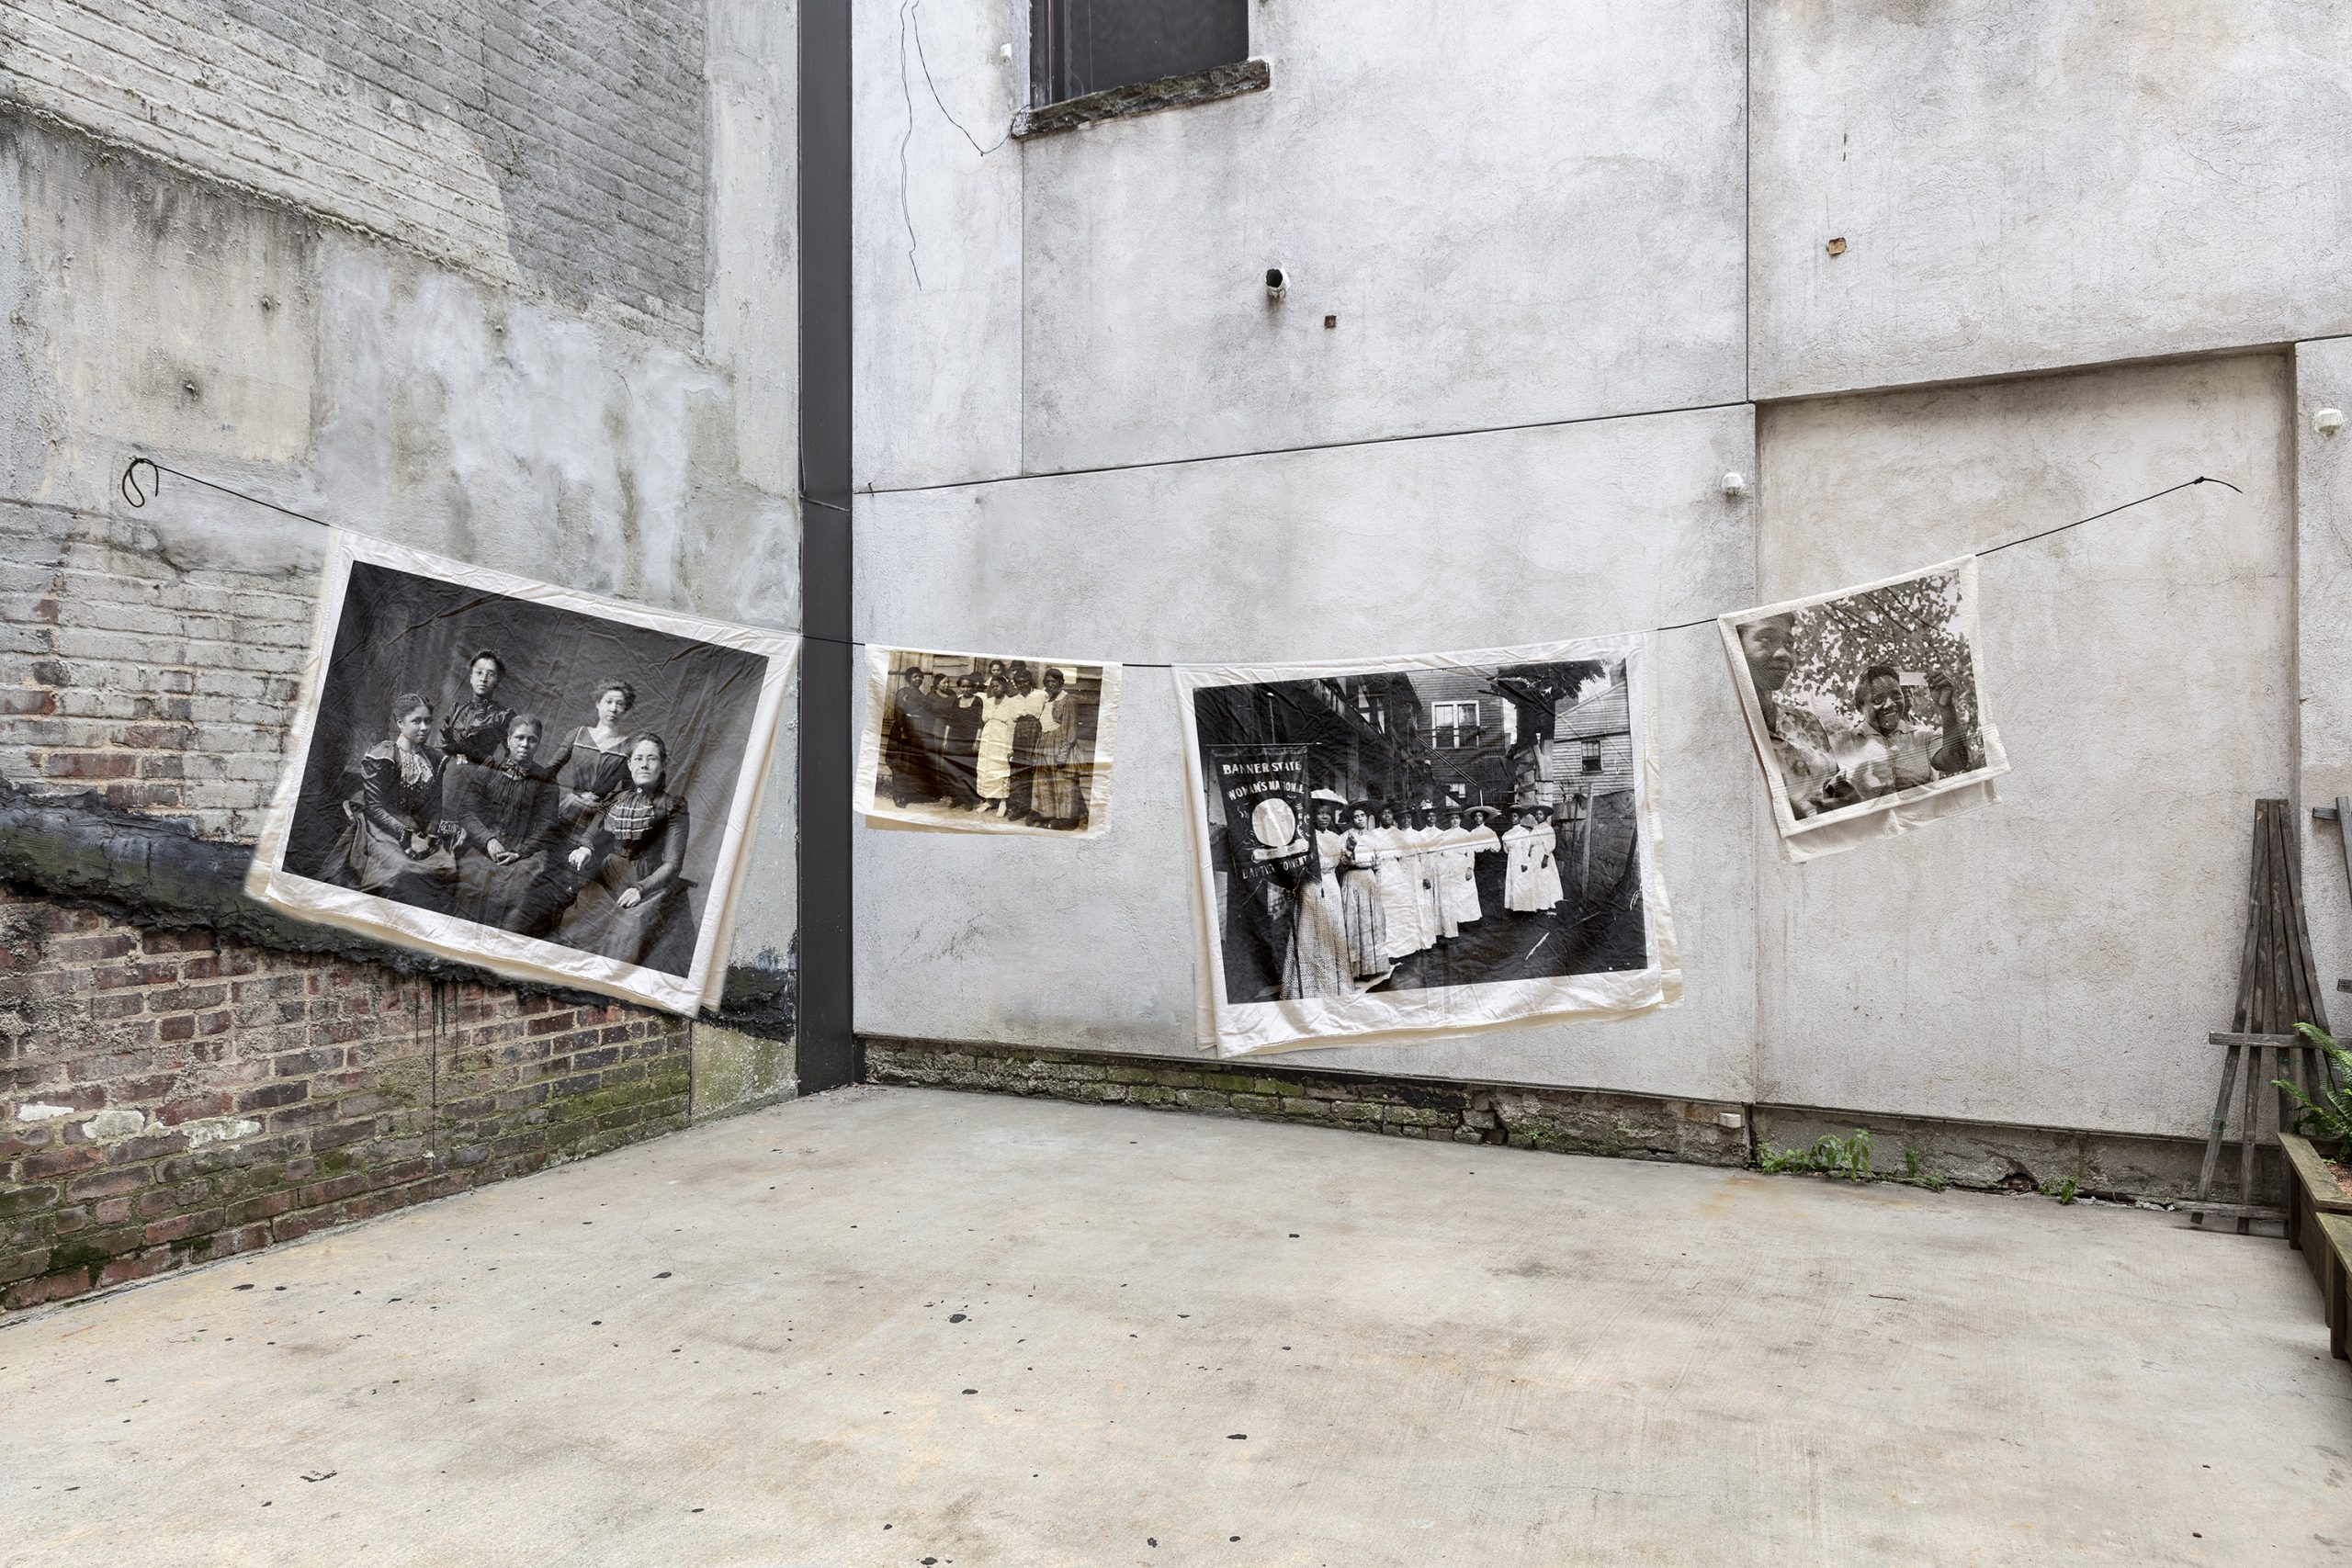 Four photographs of women printed on linen hang on a clothesline in an empty lot